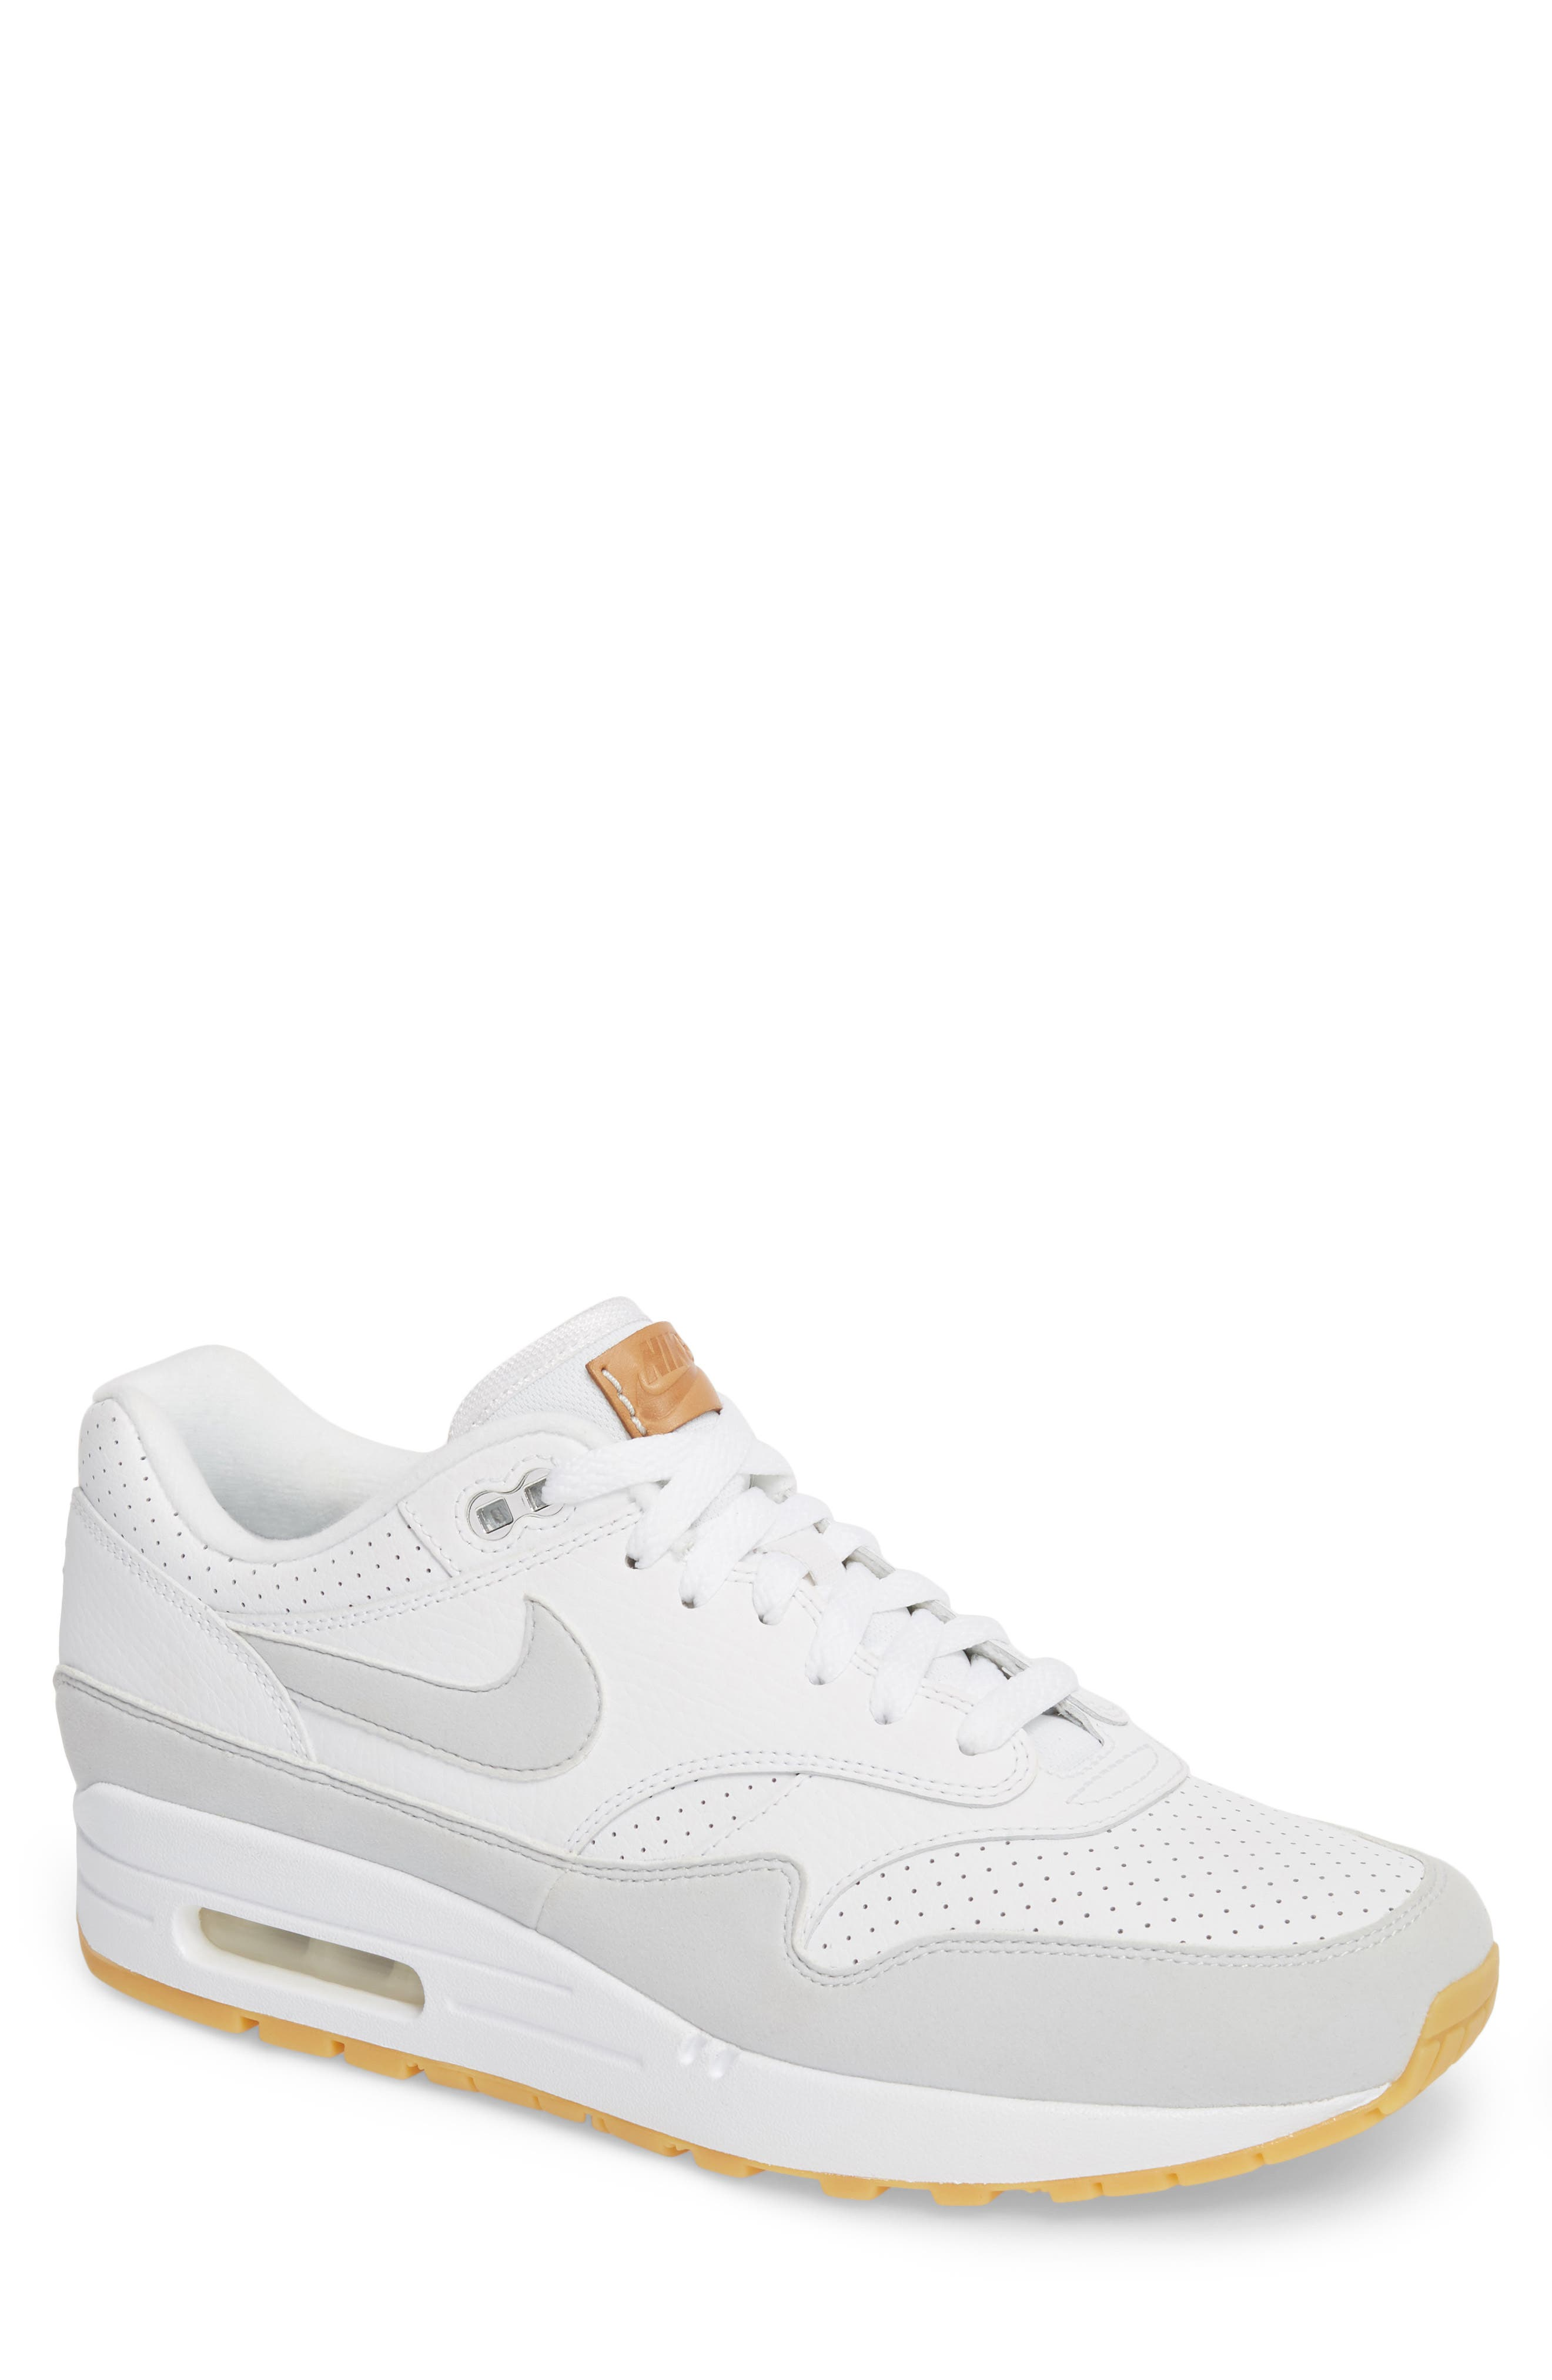 Air Max 1 Sneaker,                         Main,                         color, WHITE/ PURE PLATINUM/ YELLOW